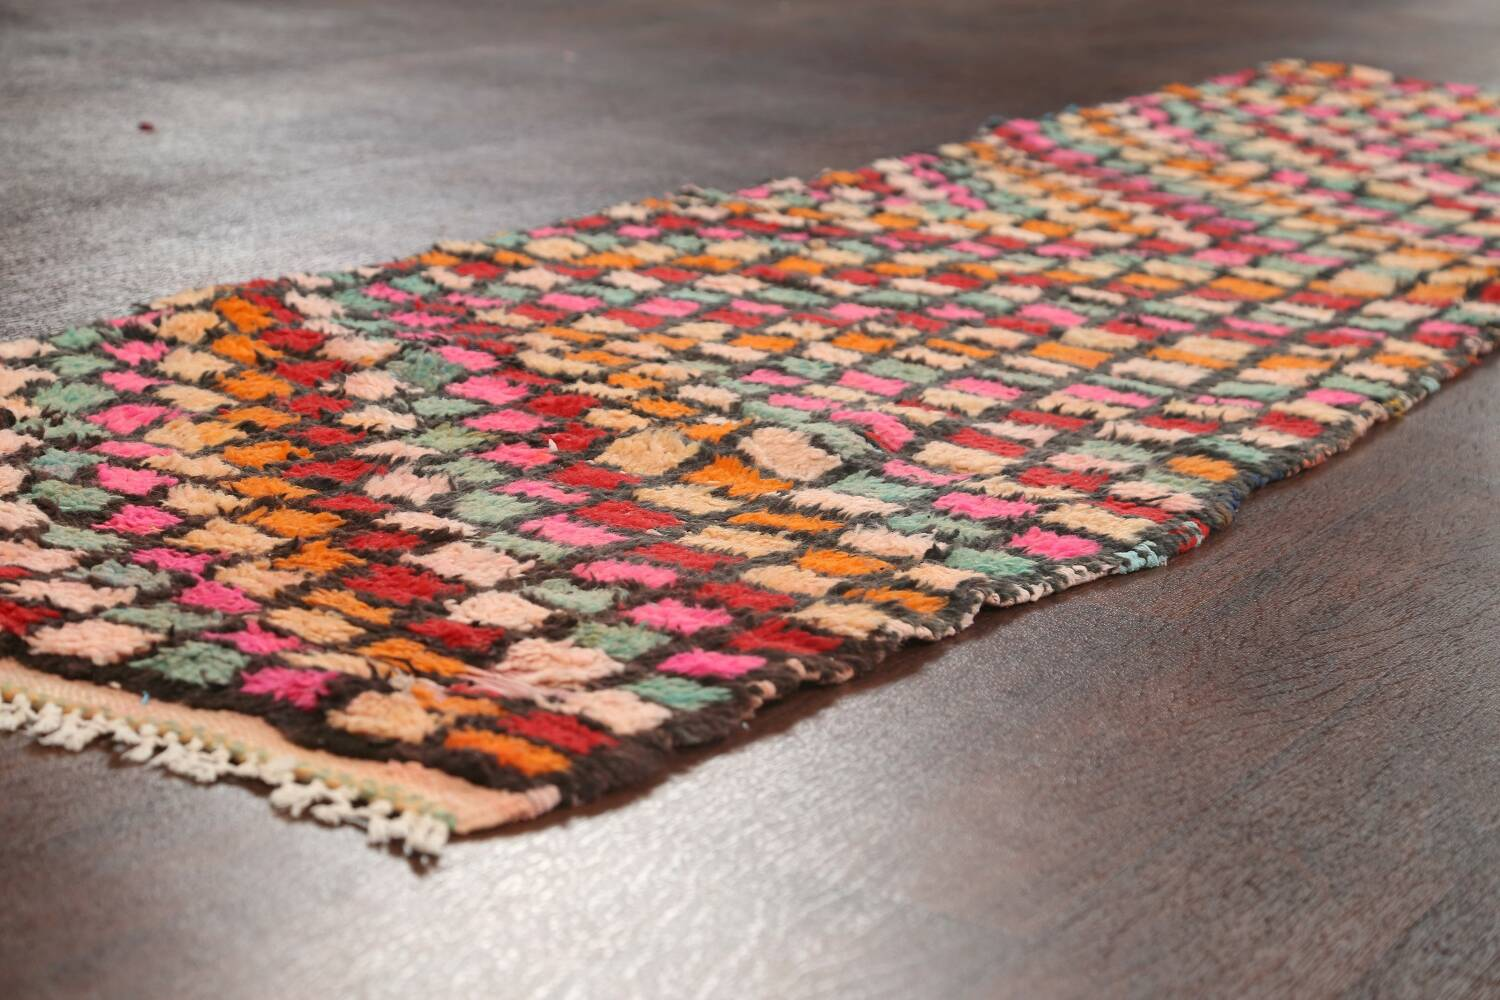 All-Over Checkered Moroccan Oriental Runner Rug 2x10 image 6